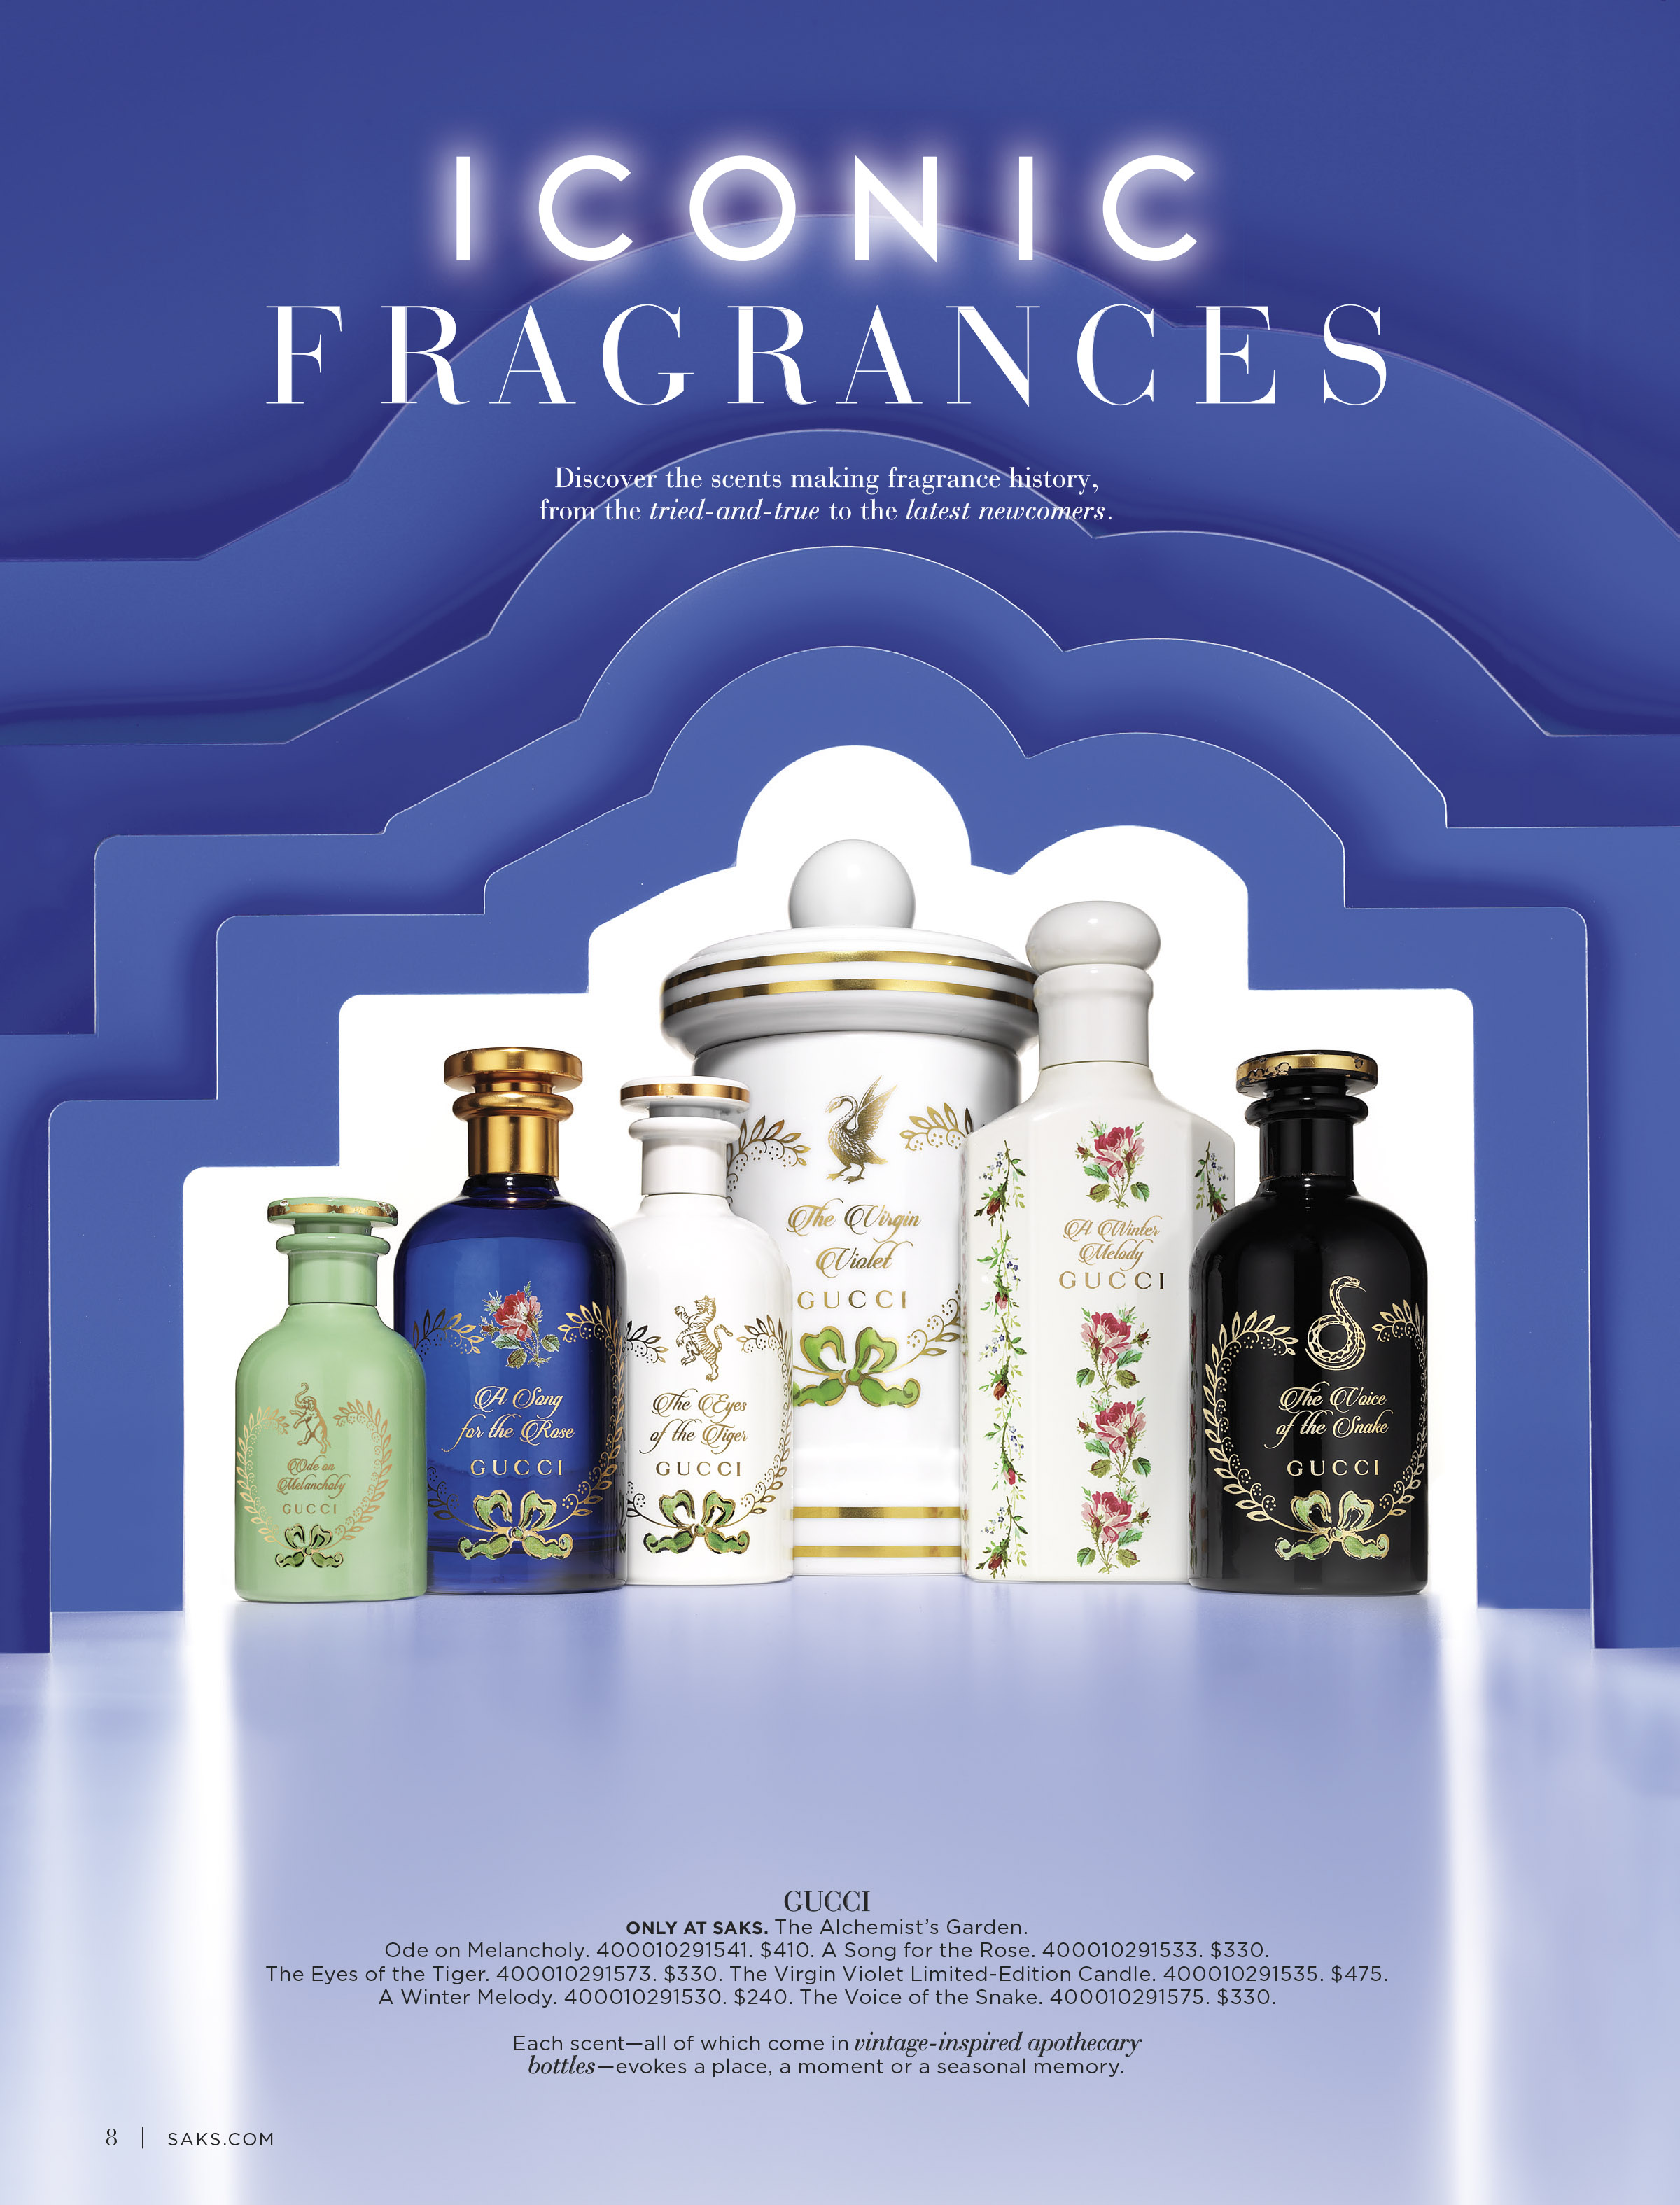 08-17_MOTHERS_DAY_S19_STORY_1_FRAGRANCE.jpg